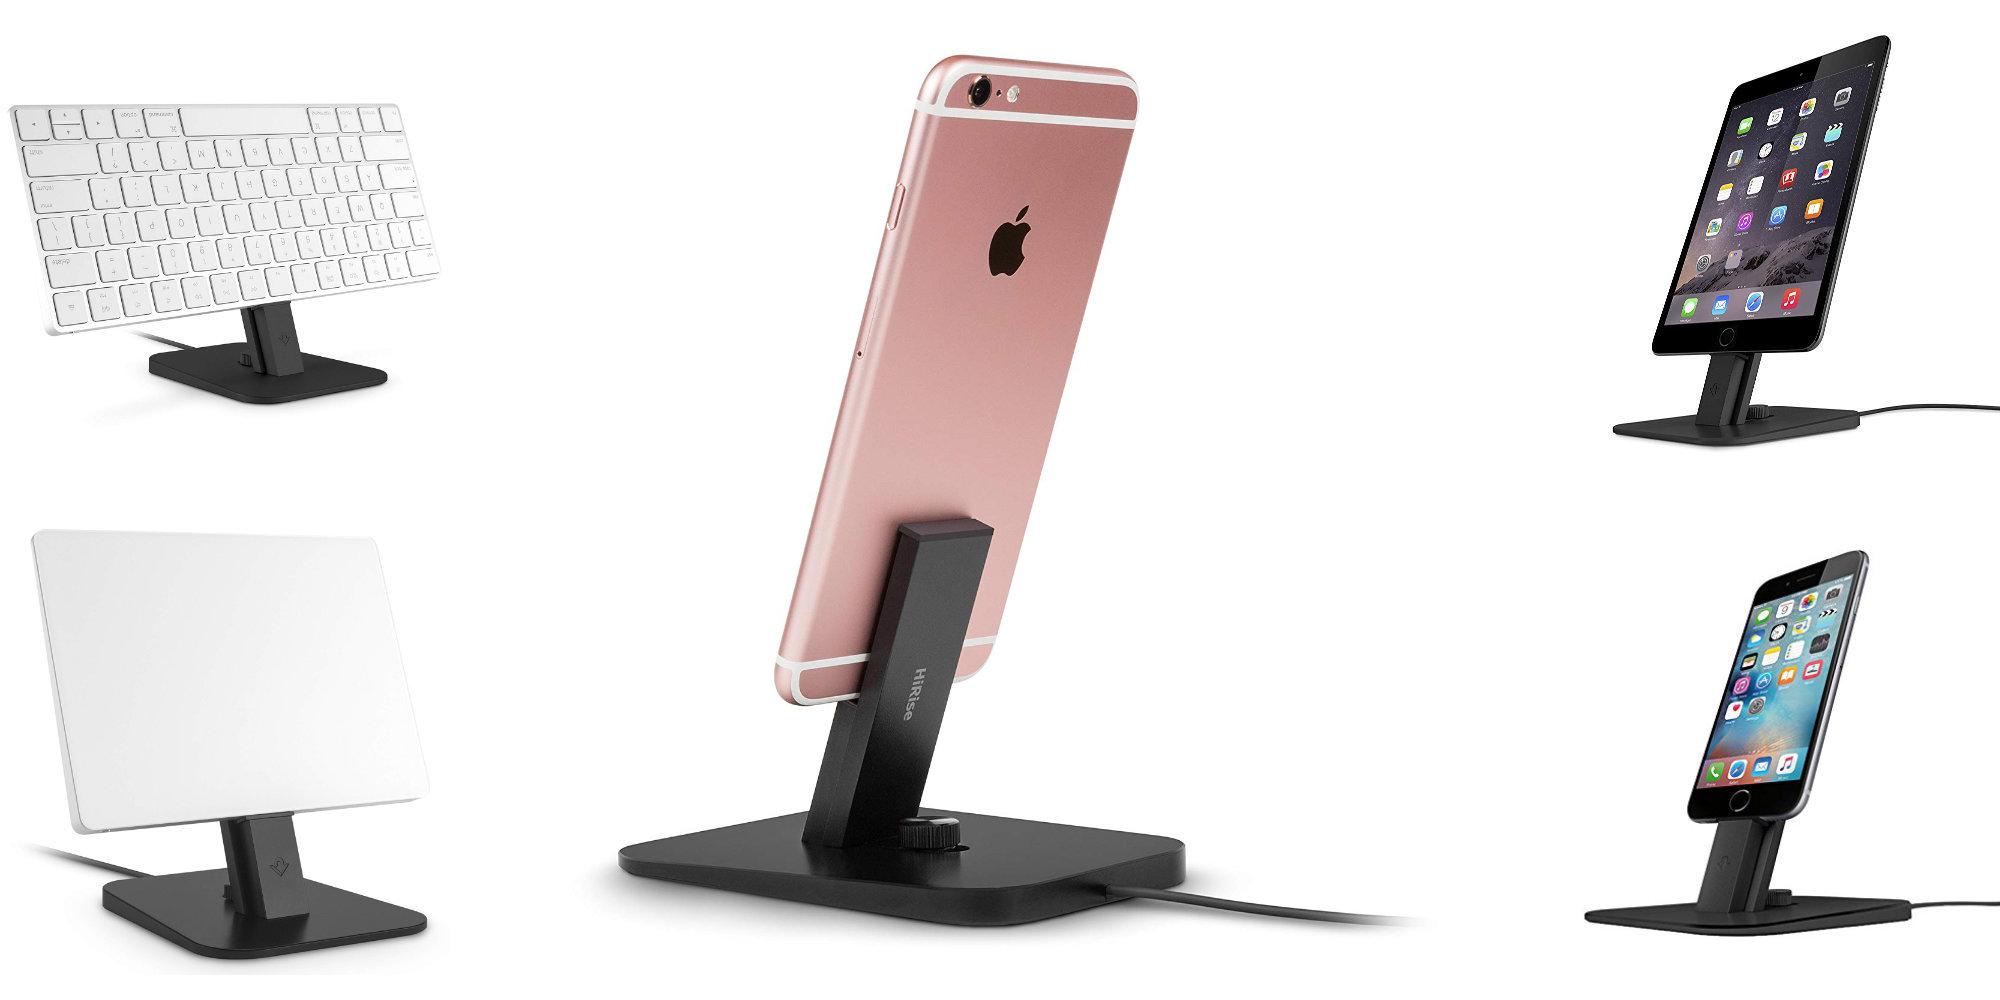 Twelve South's versatile HiRise Deluxe can dock a slew of Apple devices for $16 (Amazon low)